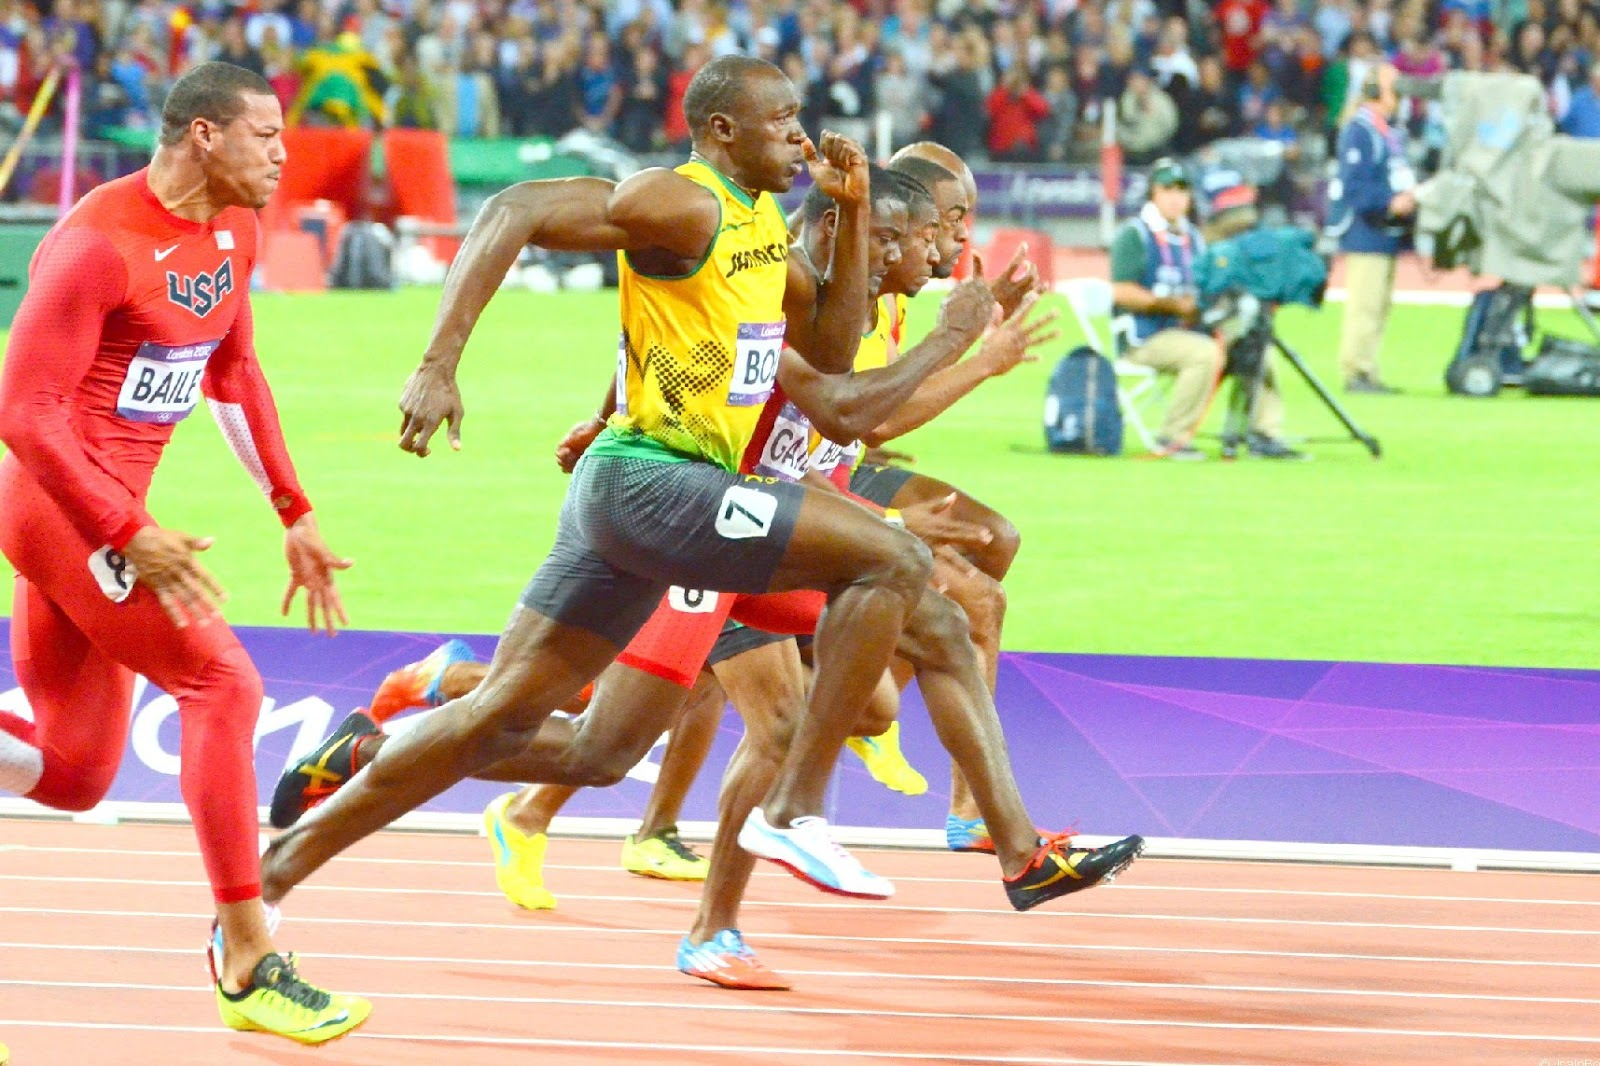 Usain Bolt 2012 Olympics Biography Records 100m latest ...